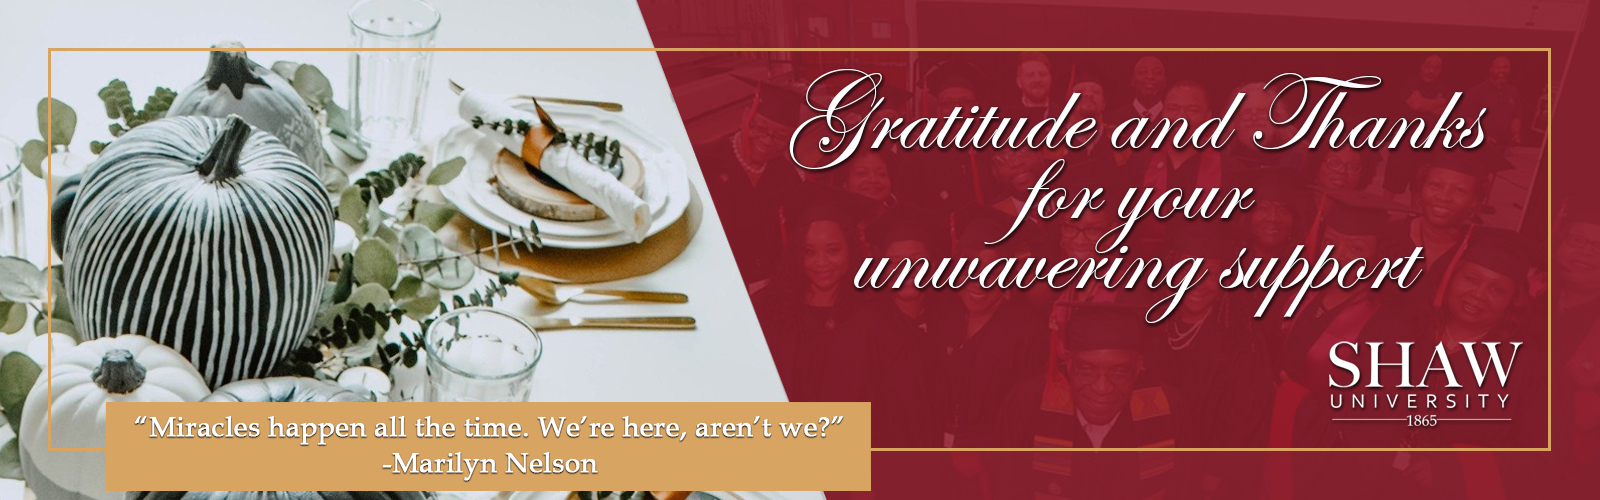 Happy Thanksgiving from Shaw University